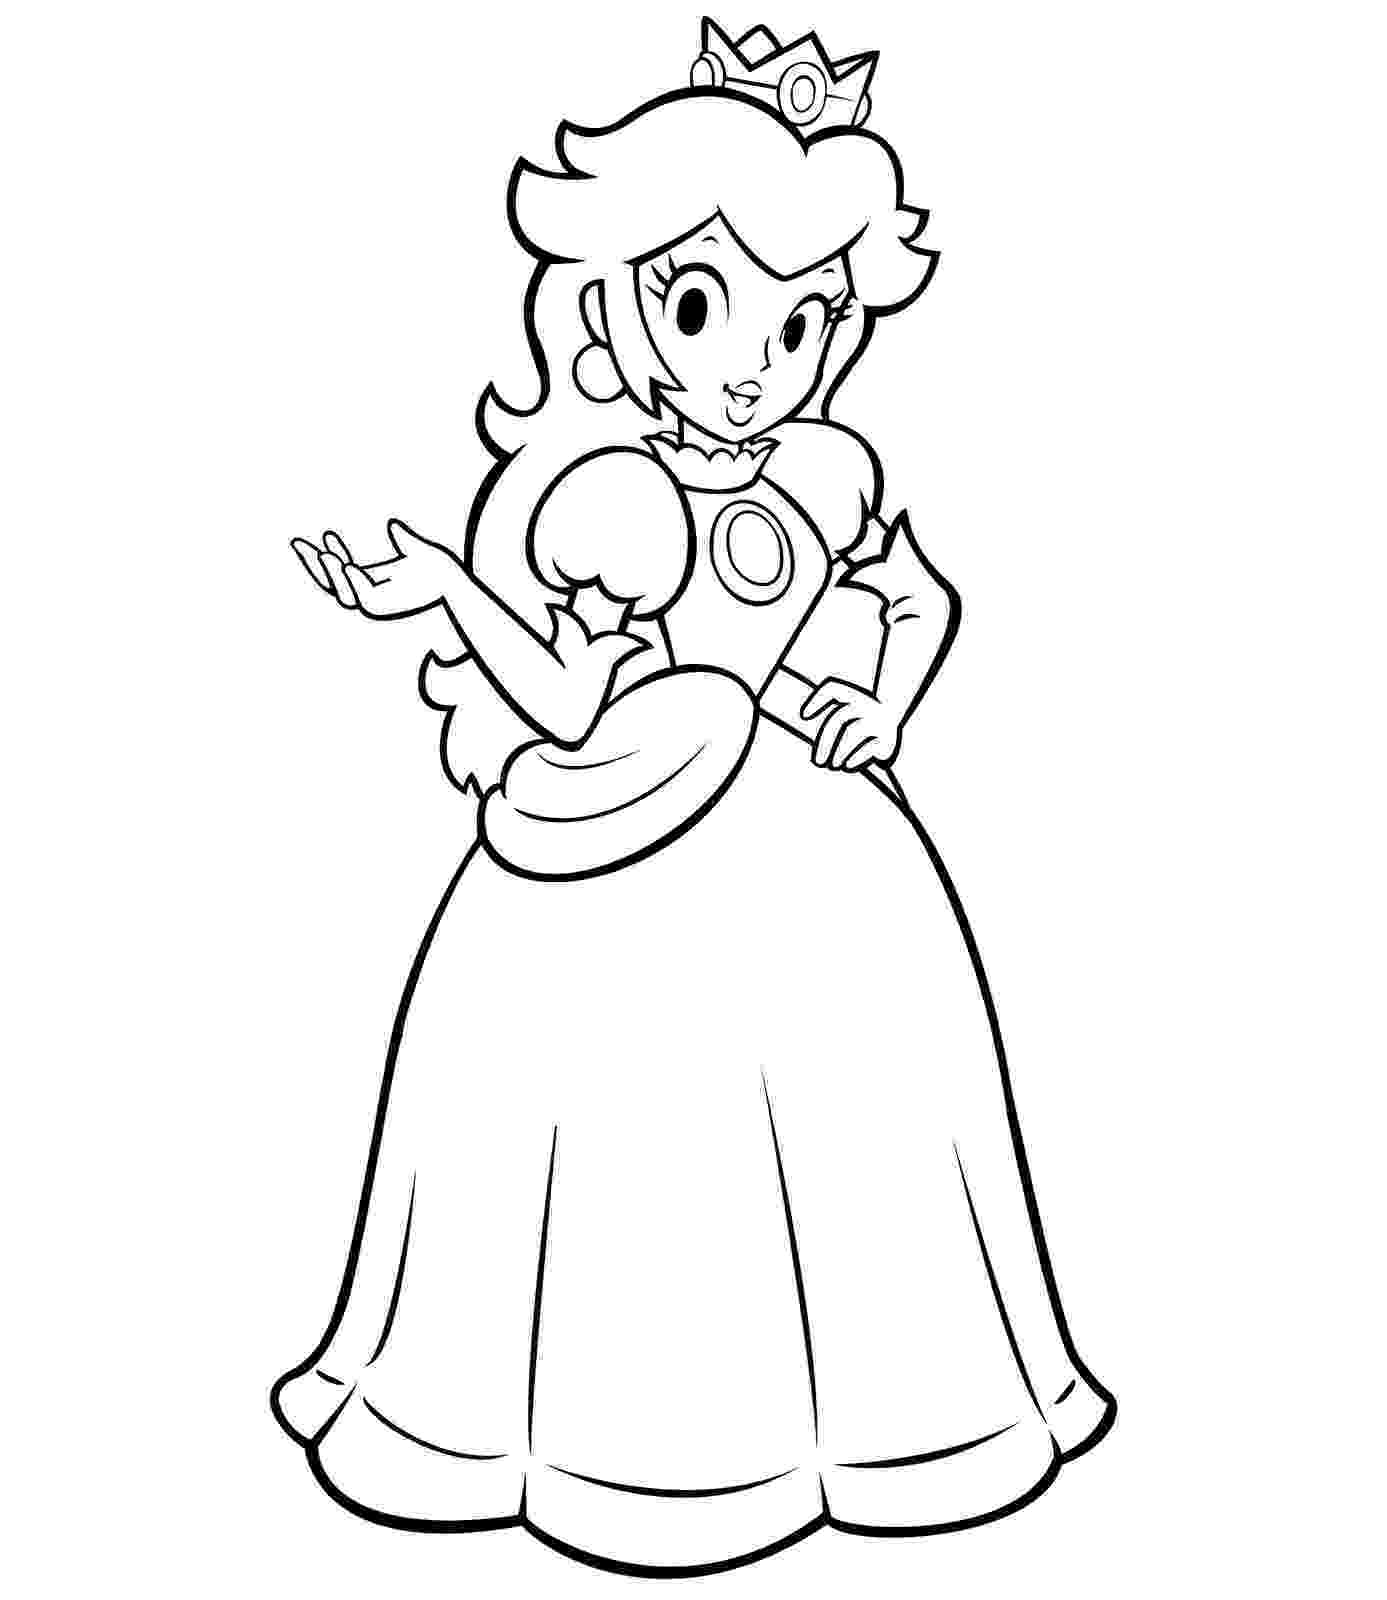 mario princesses 20 best images about mario coloring on pinterest mario princesses